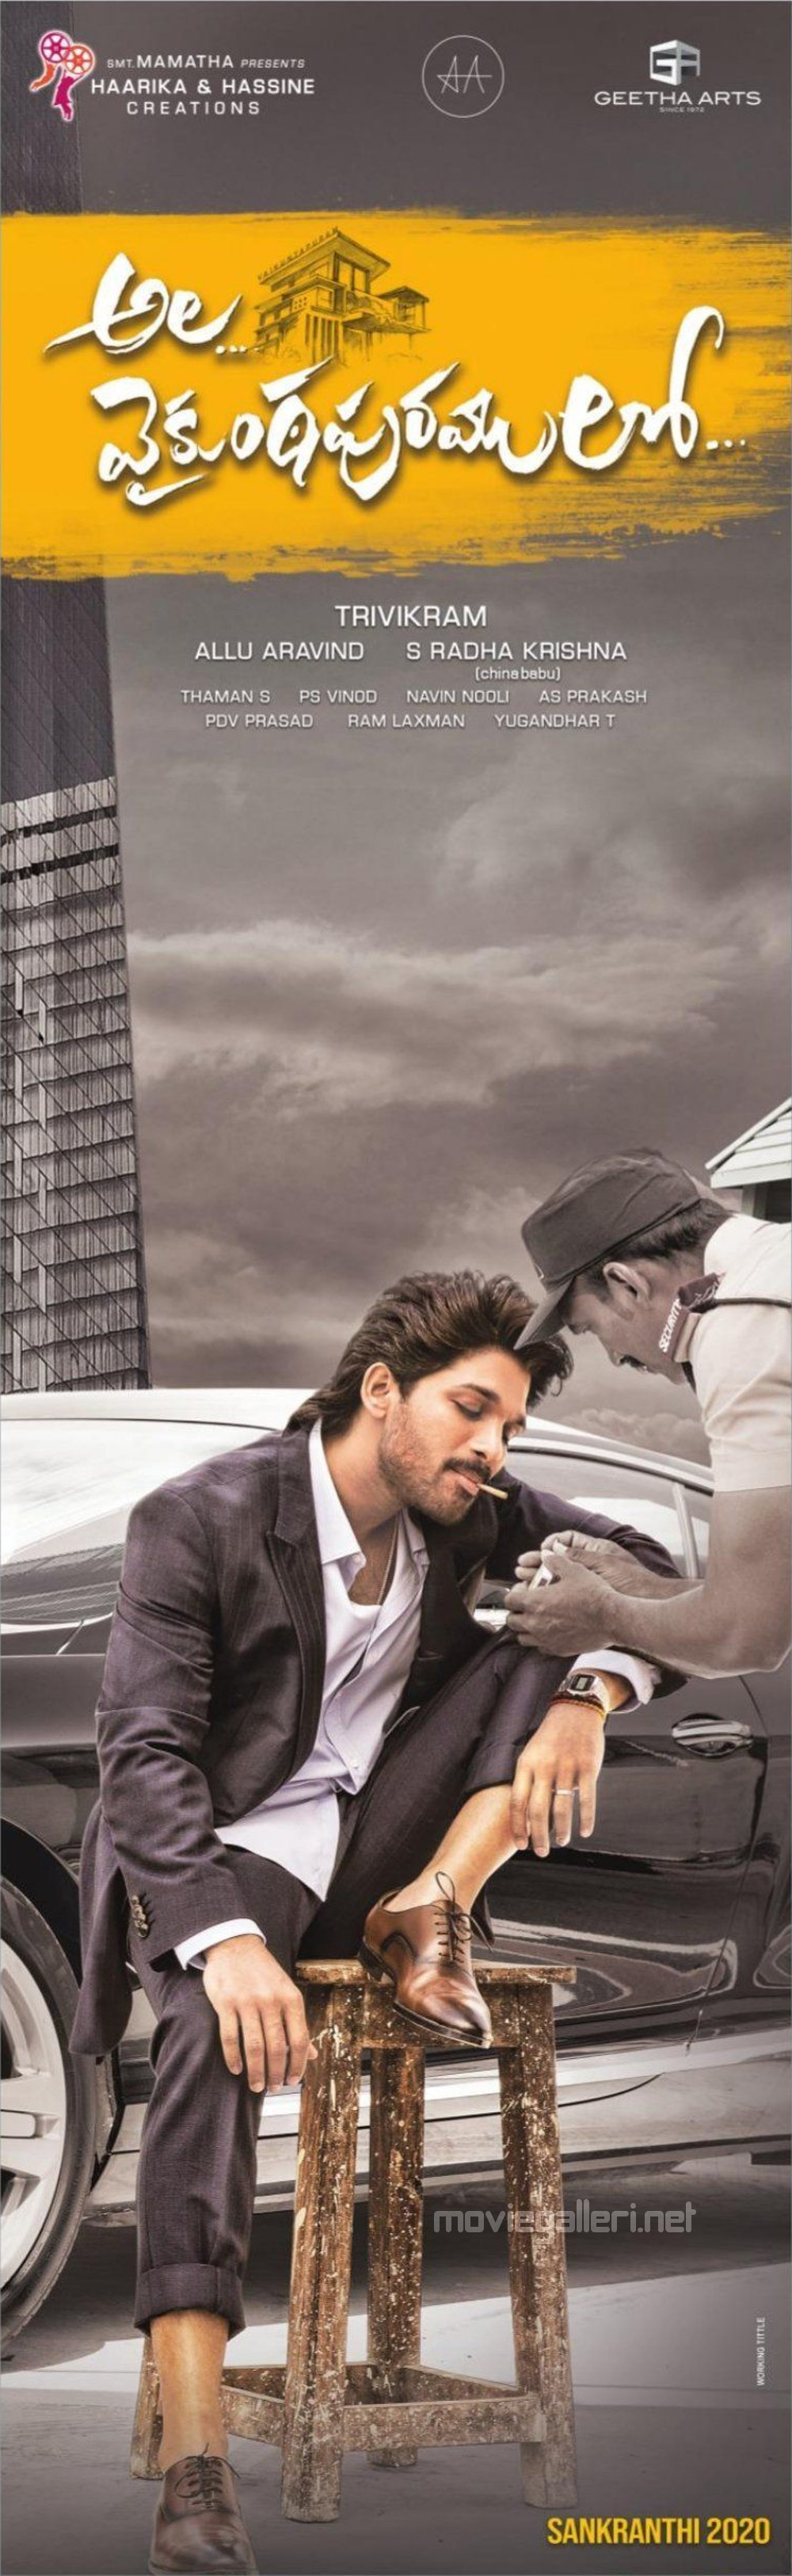 Allu Arjun Ala Vaikuntapuramlo Movie First Look Poster